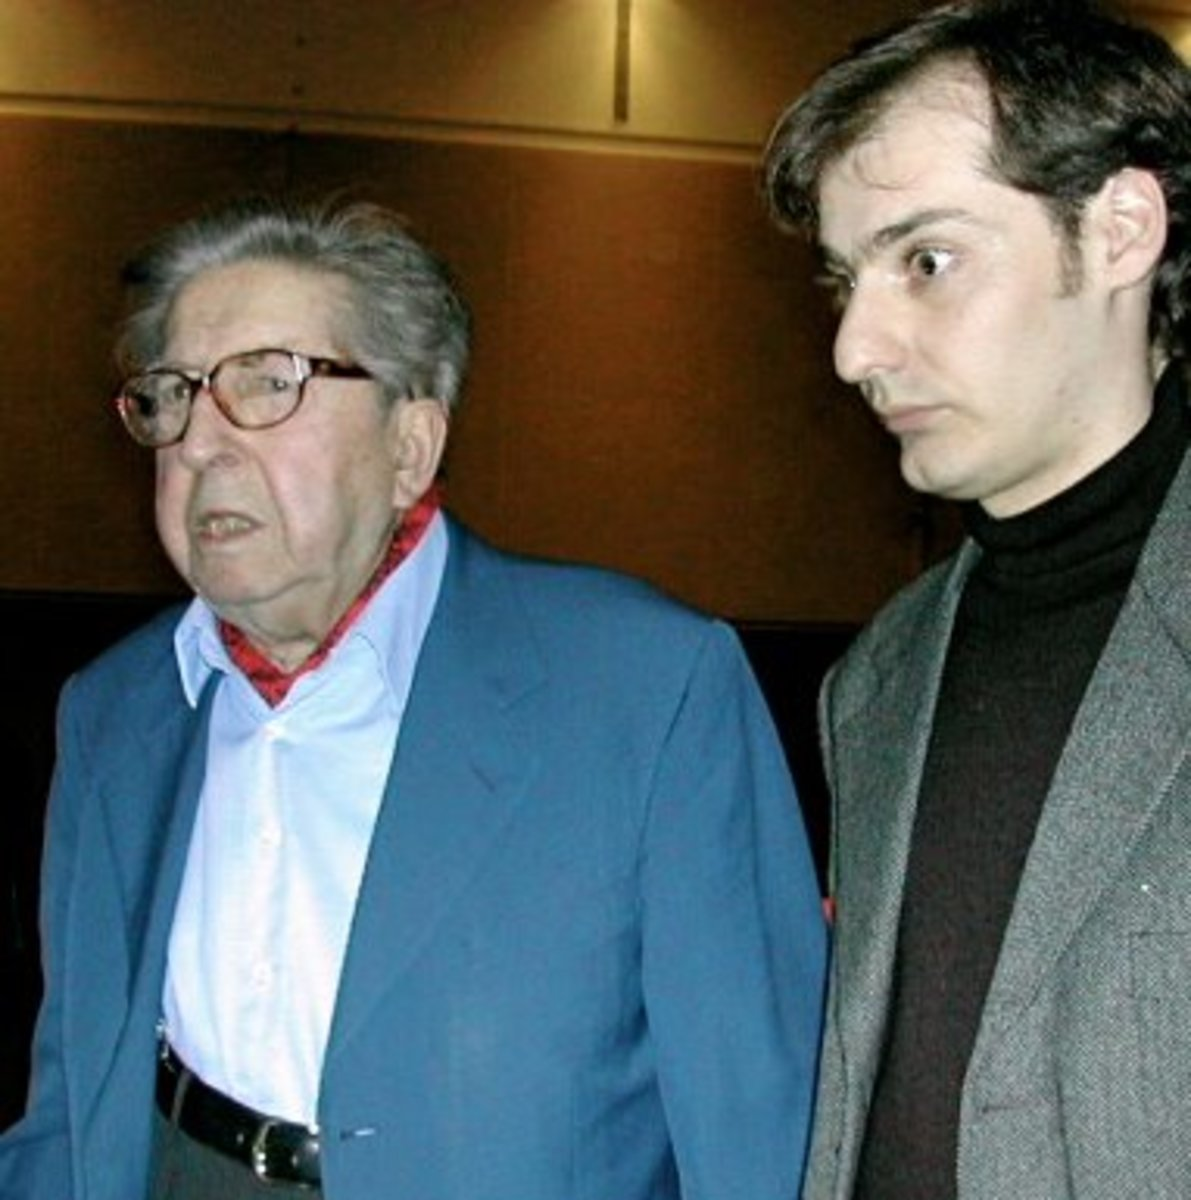 Henri Dutilleux (left) attending the Concours International de Composition as a member of the jury in 2004.